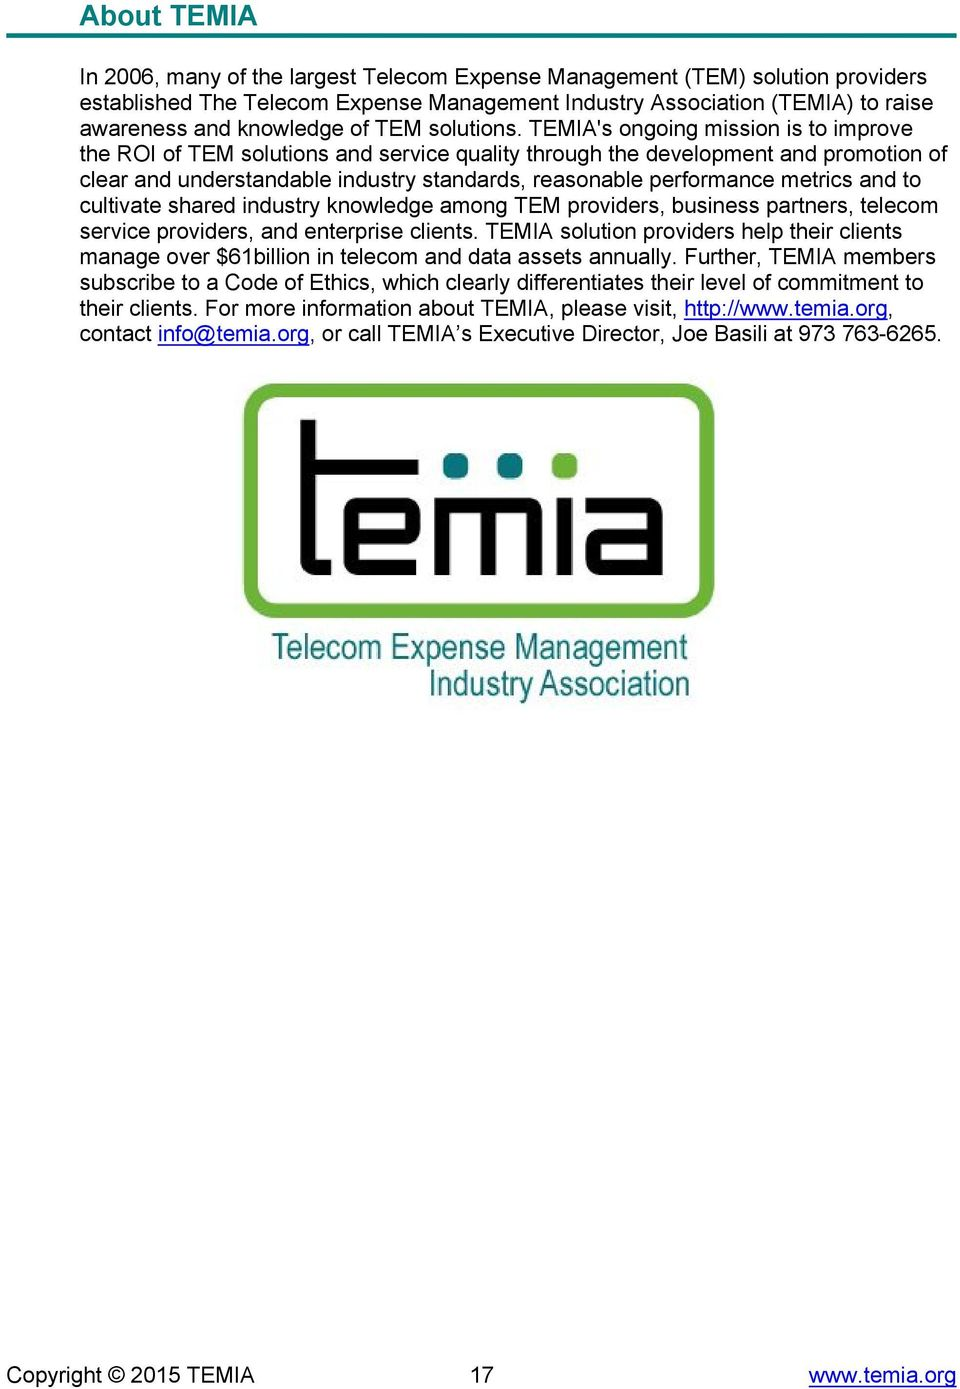 TEMIA's ongoing mission is to improve the ROI of TEM solutions and service quality through the development and promotion of clear and understandable industry standards, reasonable performance metrics